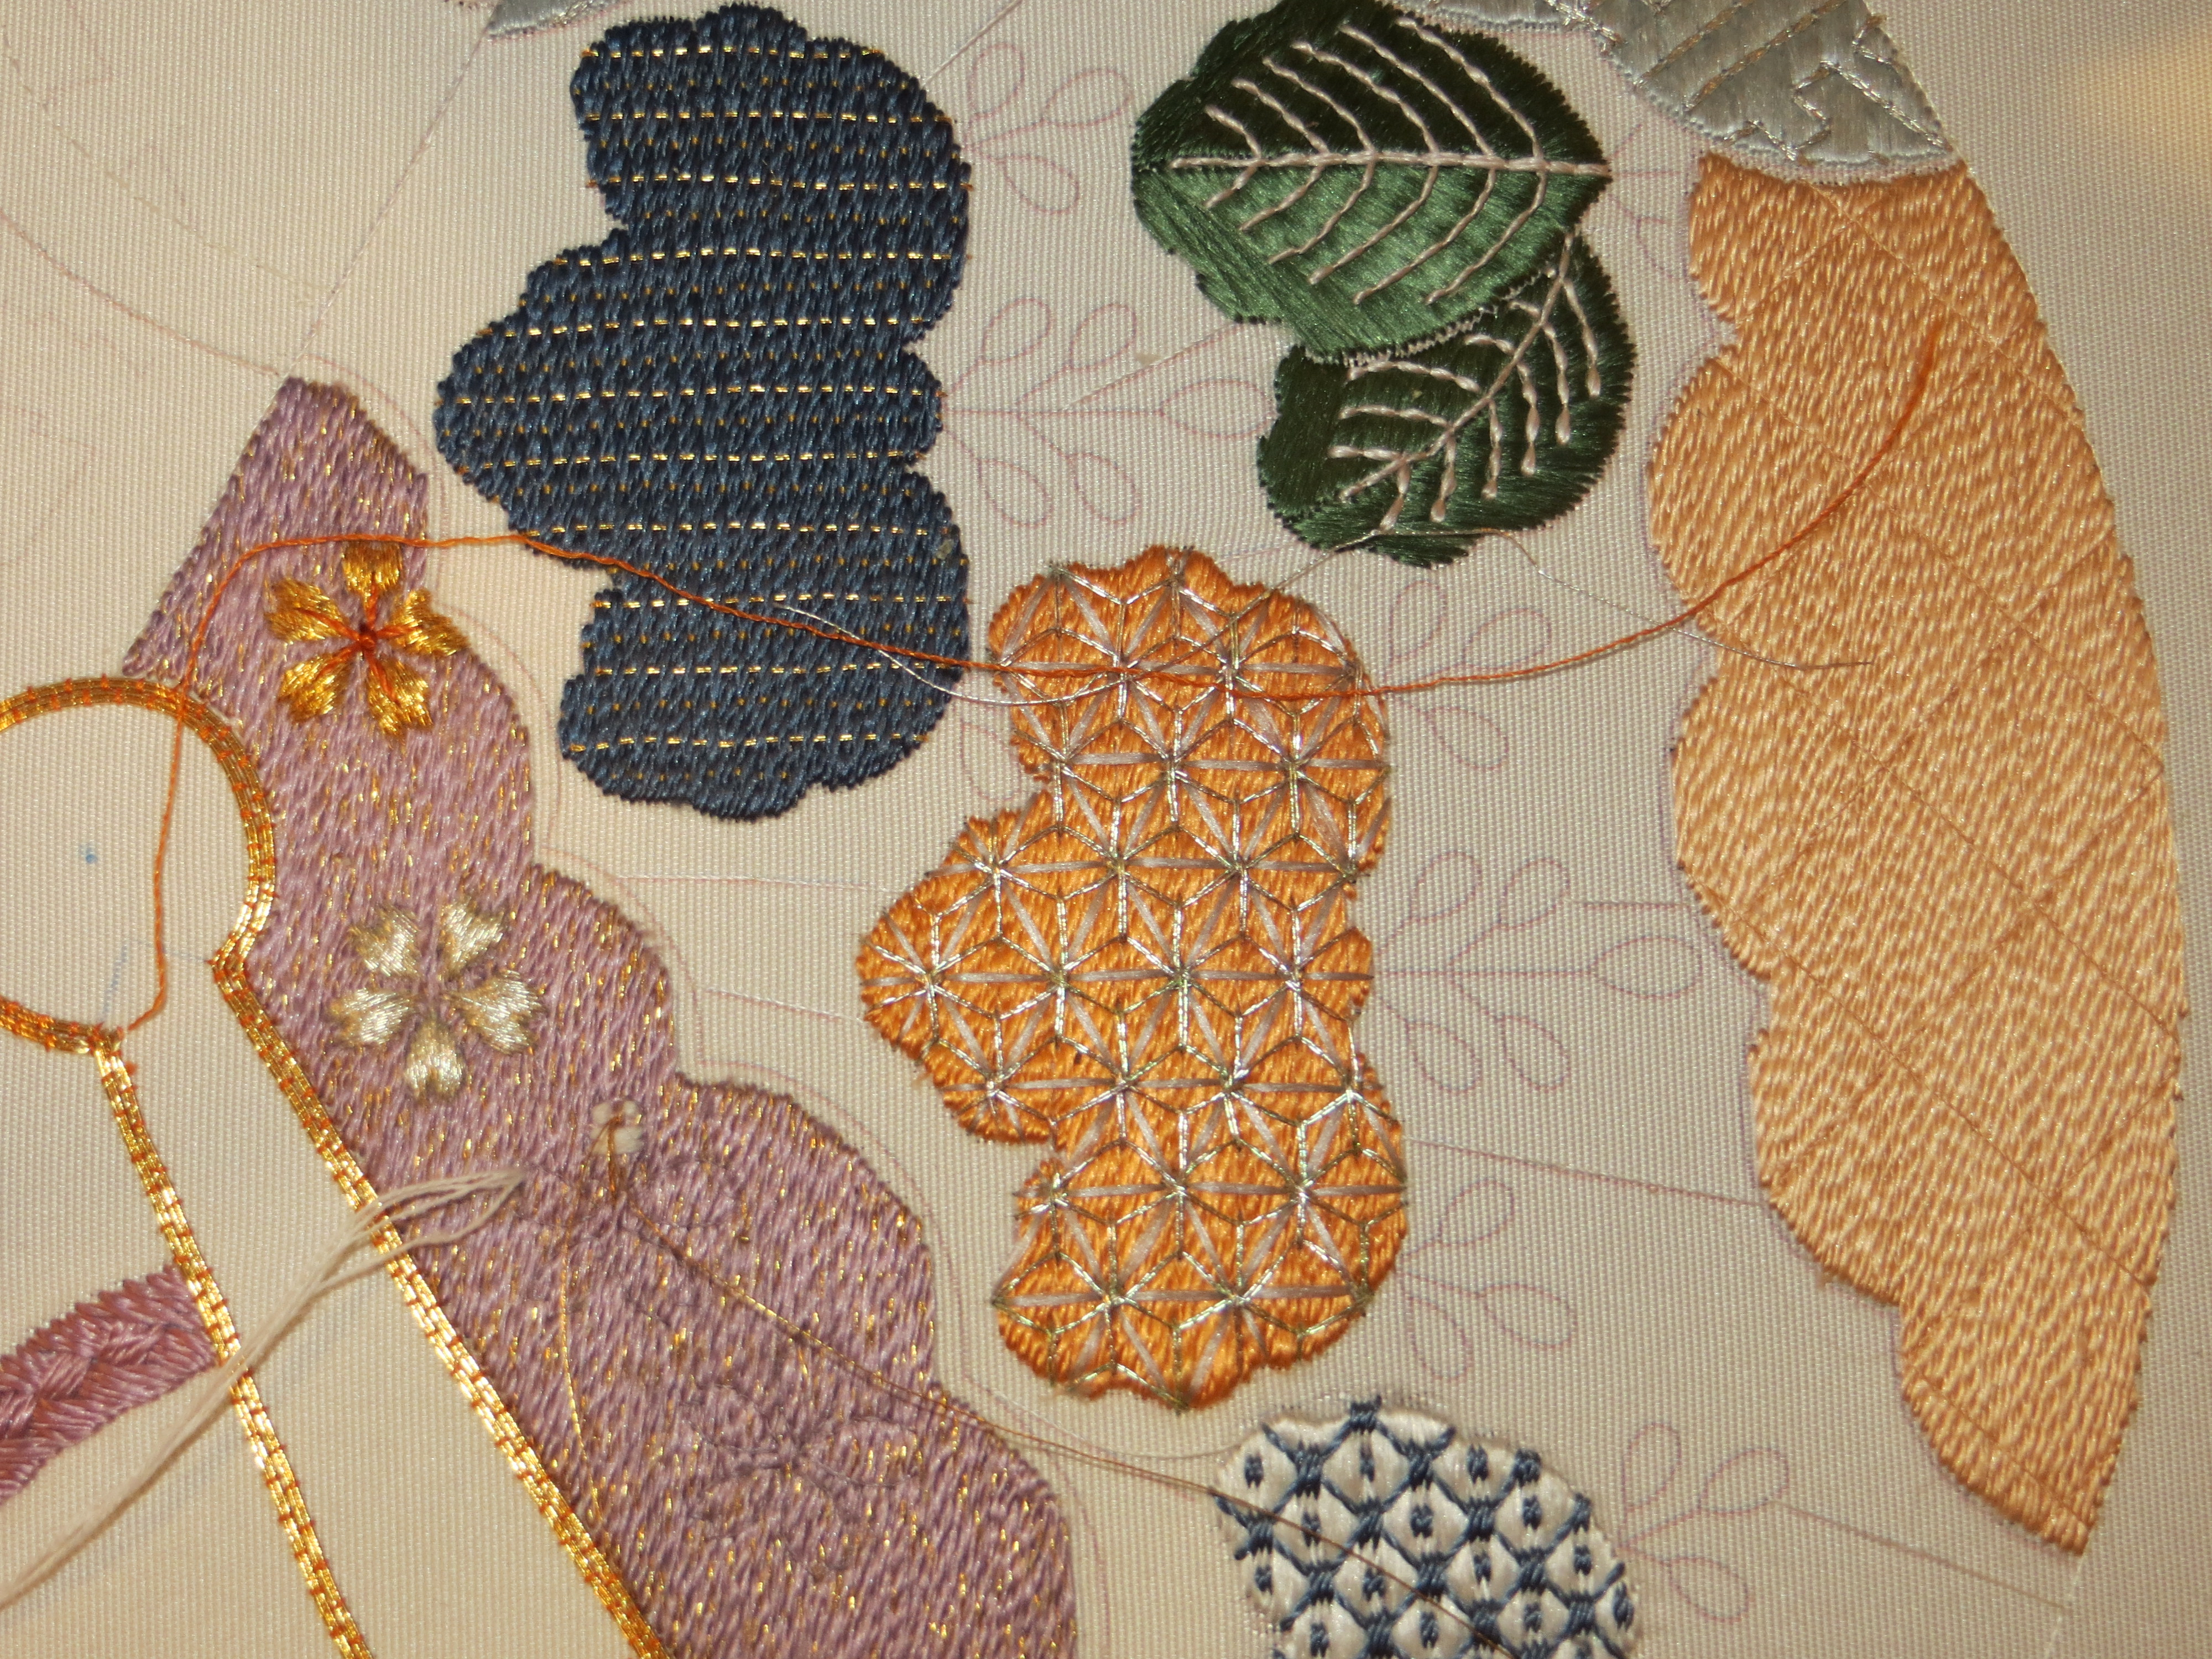 Day japanese embroidery and beading class quail run